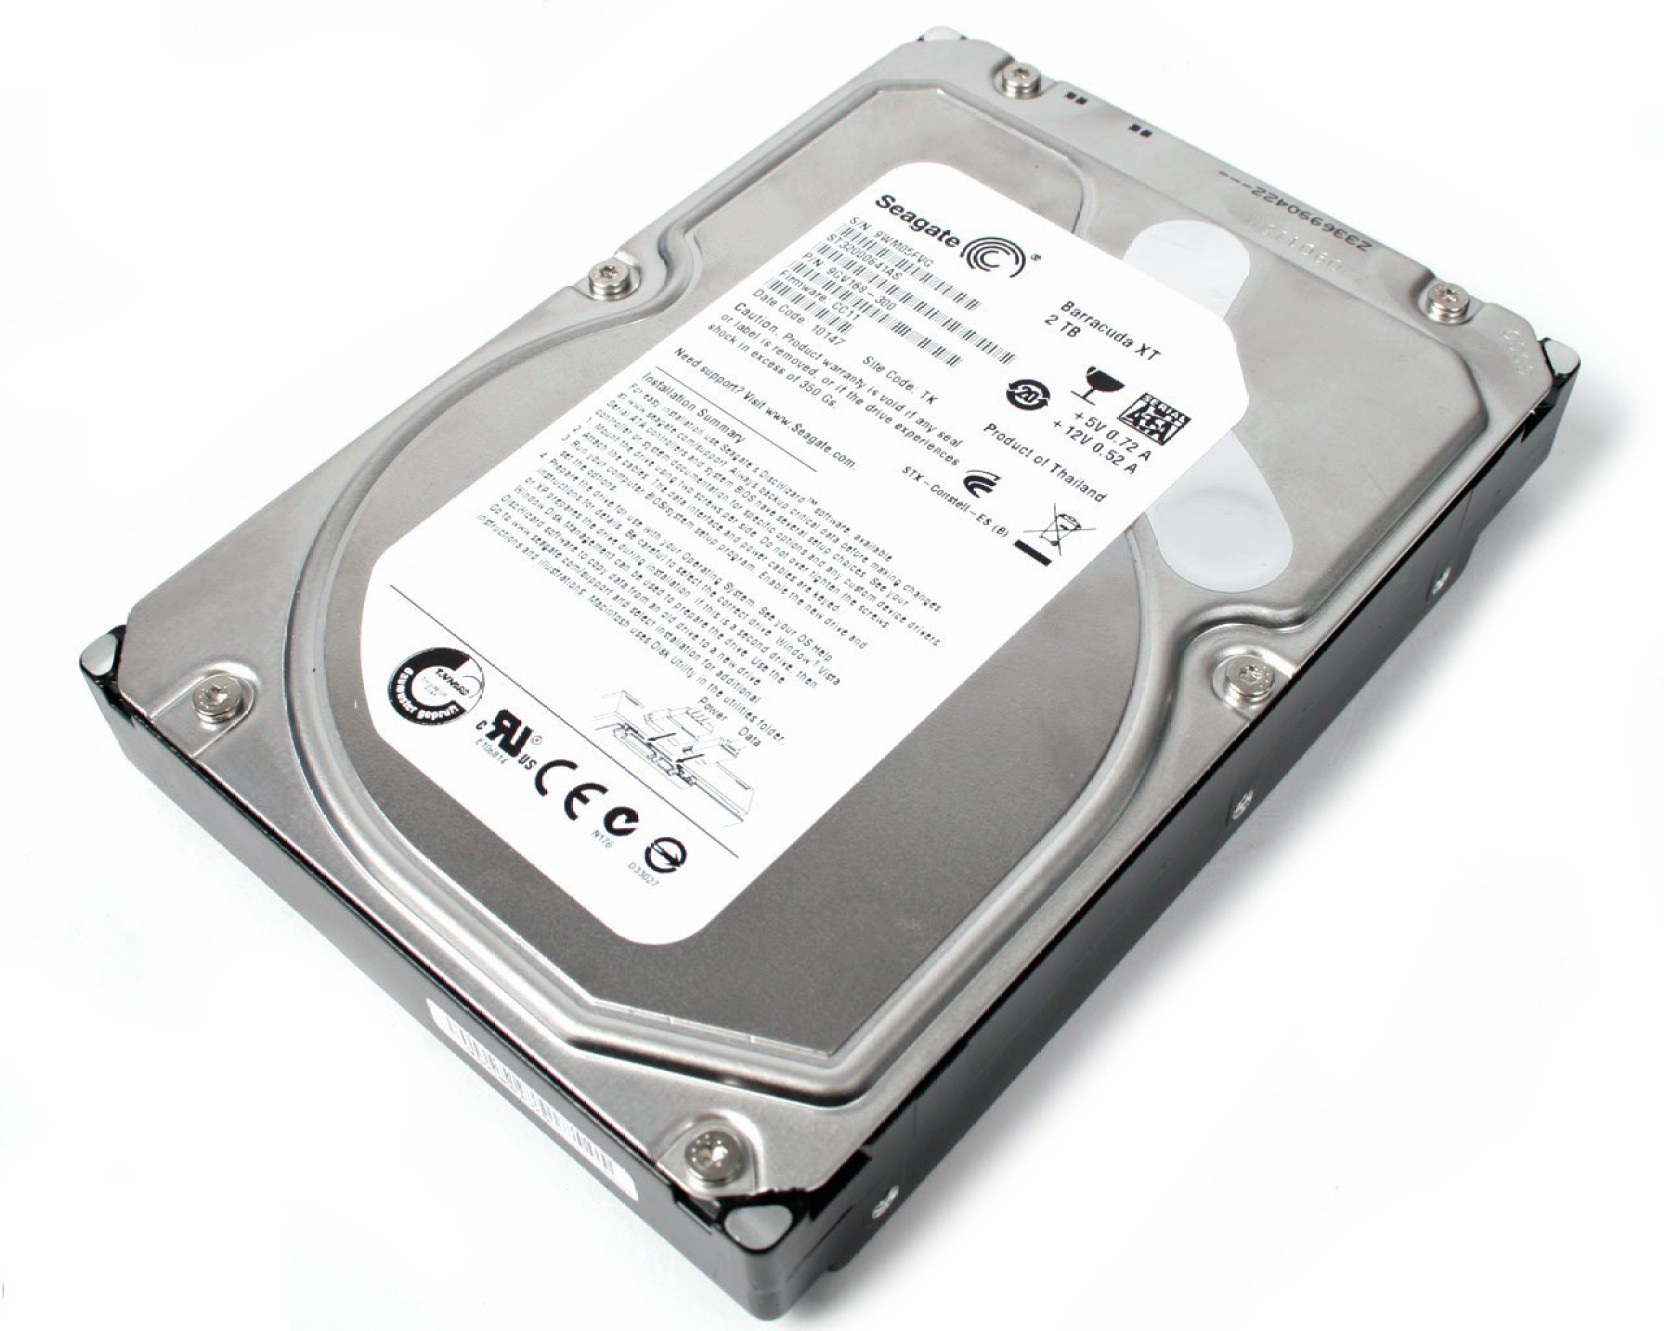 Tempat Jual Seagate Barracuda Hard Disk Internal 2 Tb 35 Inch Sata Police 14685jsb 61 Hitam Desktop Drive Model Number May Vary